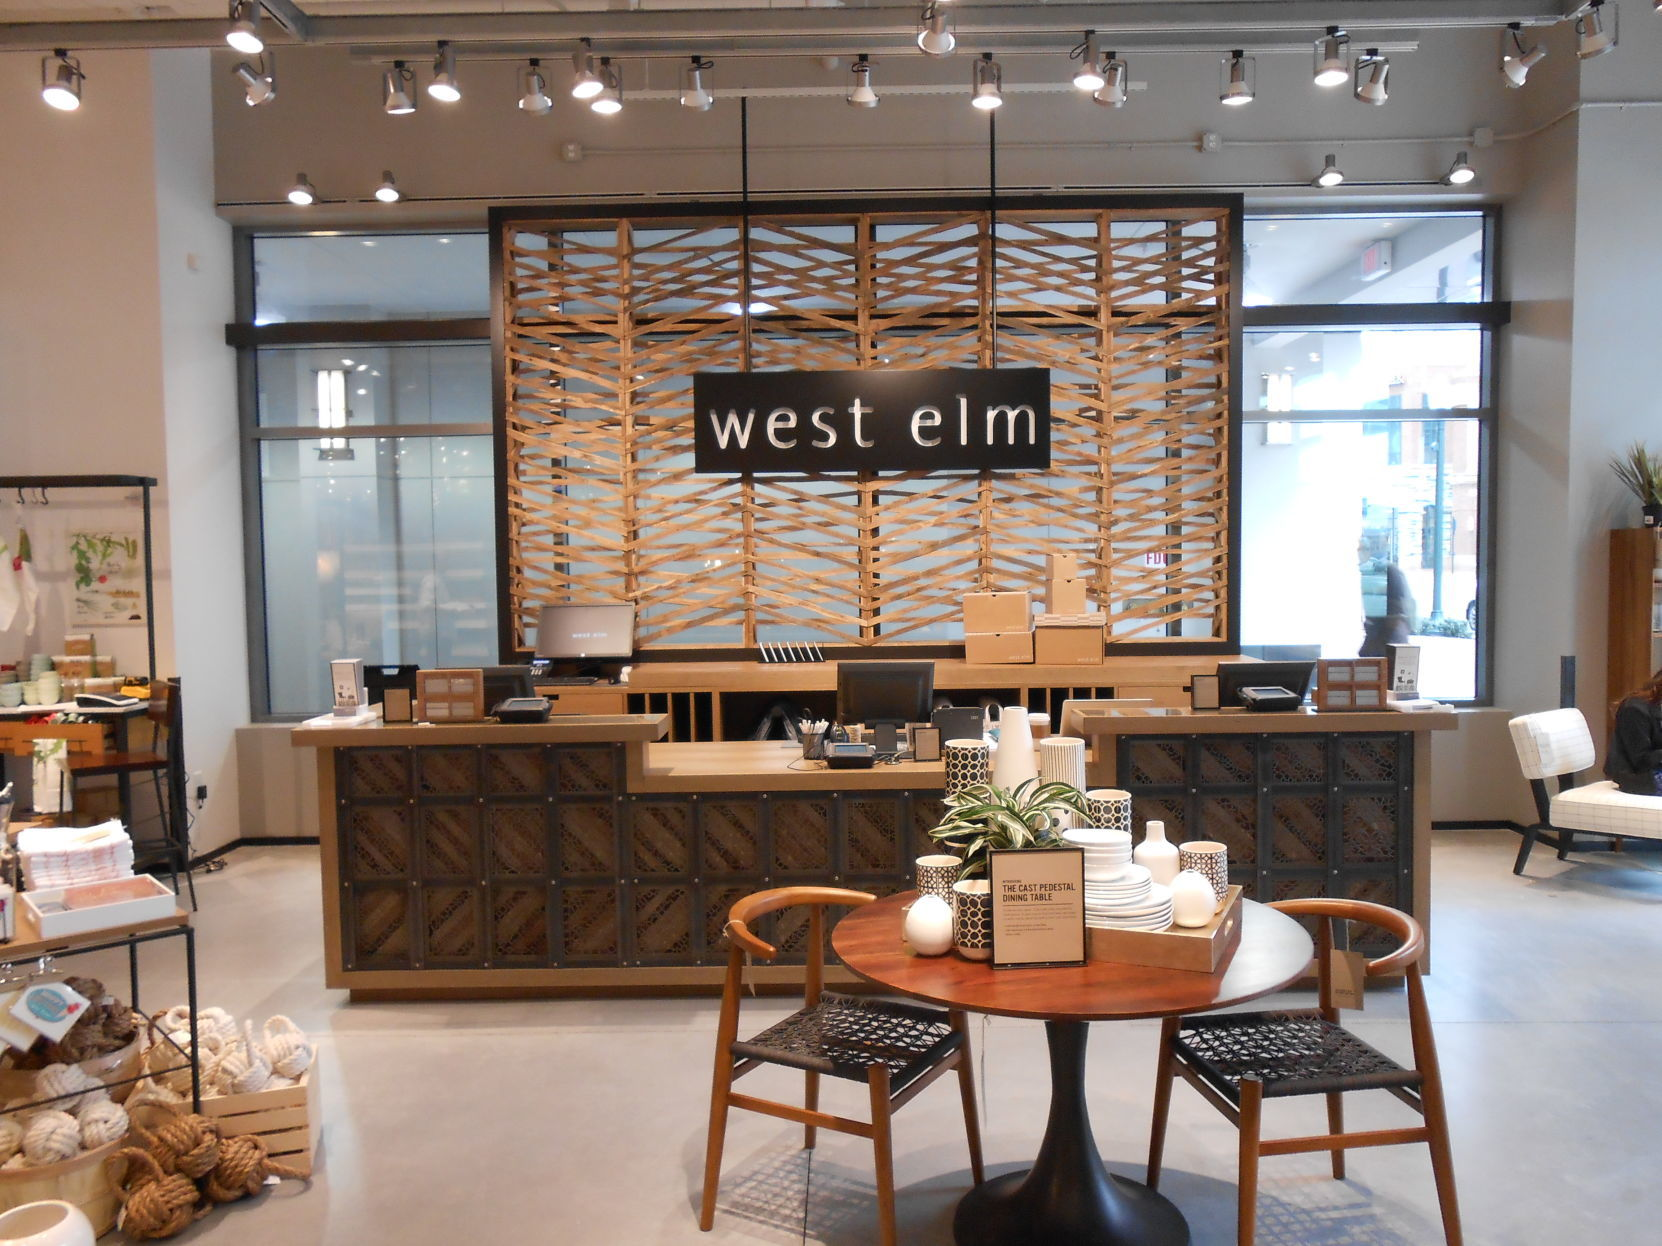 West Elm, Based In New York, Also Has Stores In Virginia Beach (above) And  Fairfax. Its New Location In Carytown Will Hire About 30 Workers.